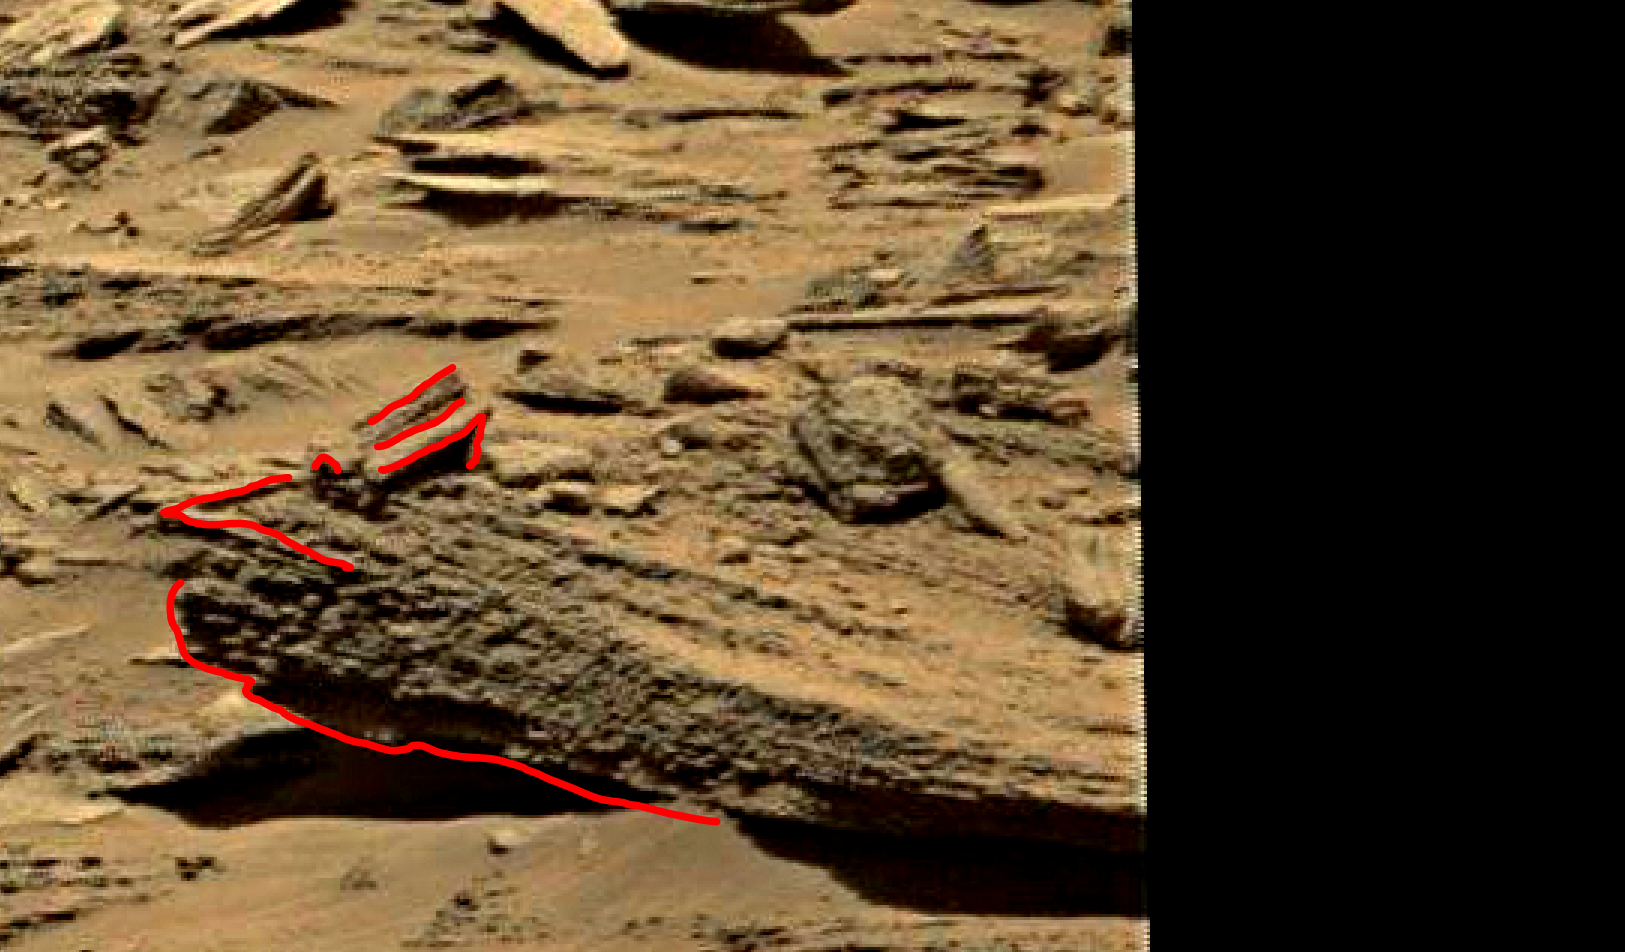 mars sol 1353 anomaly-artifacts 6c was life on mars